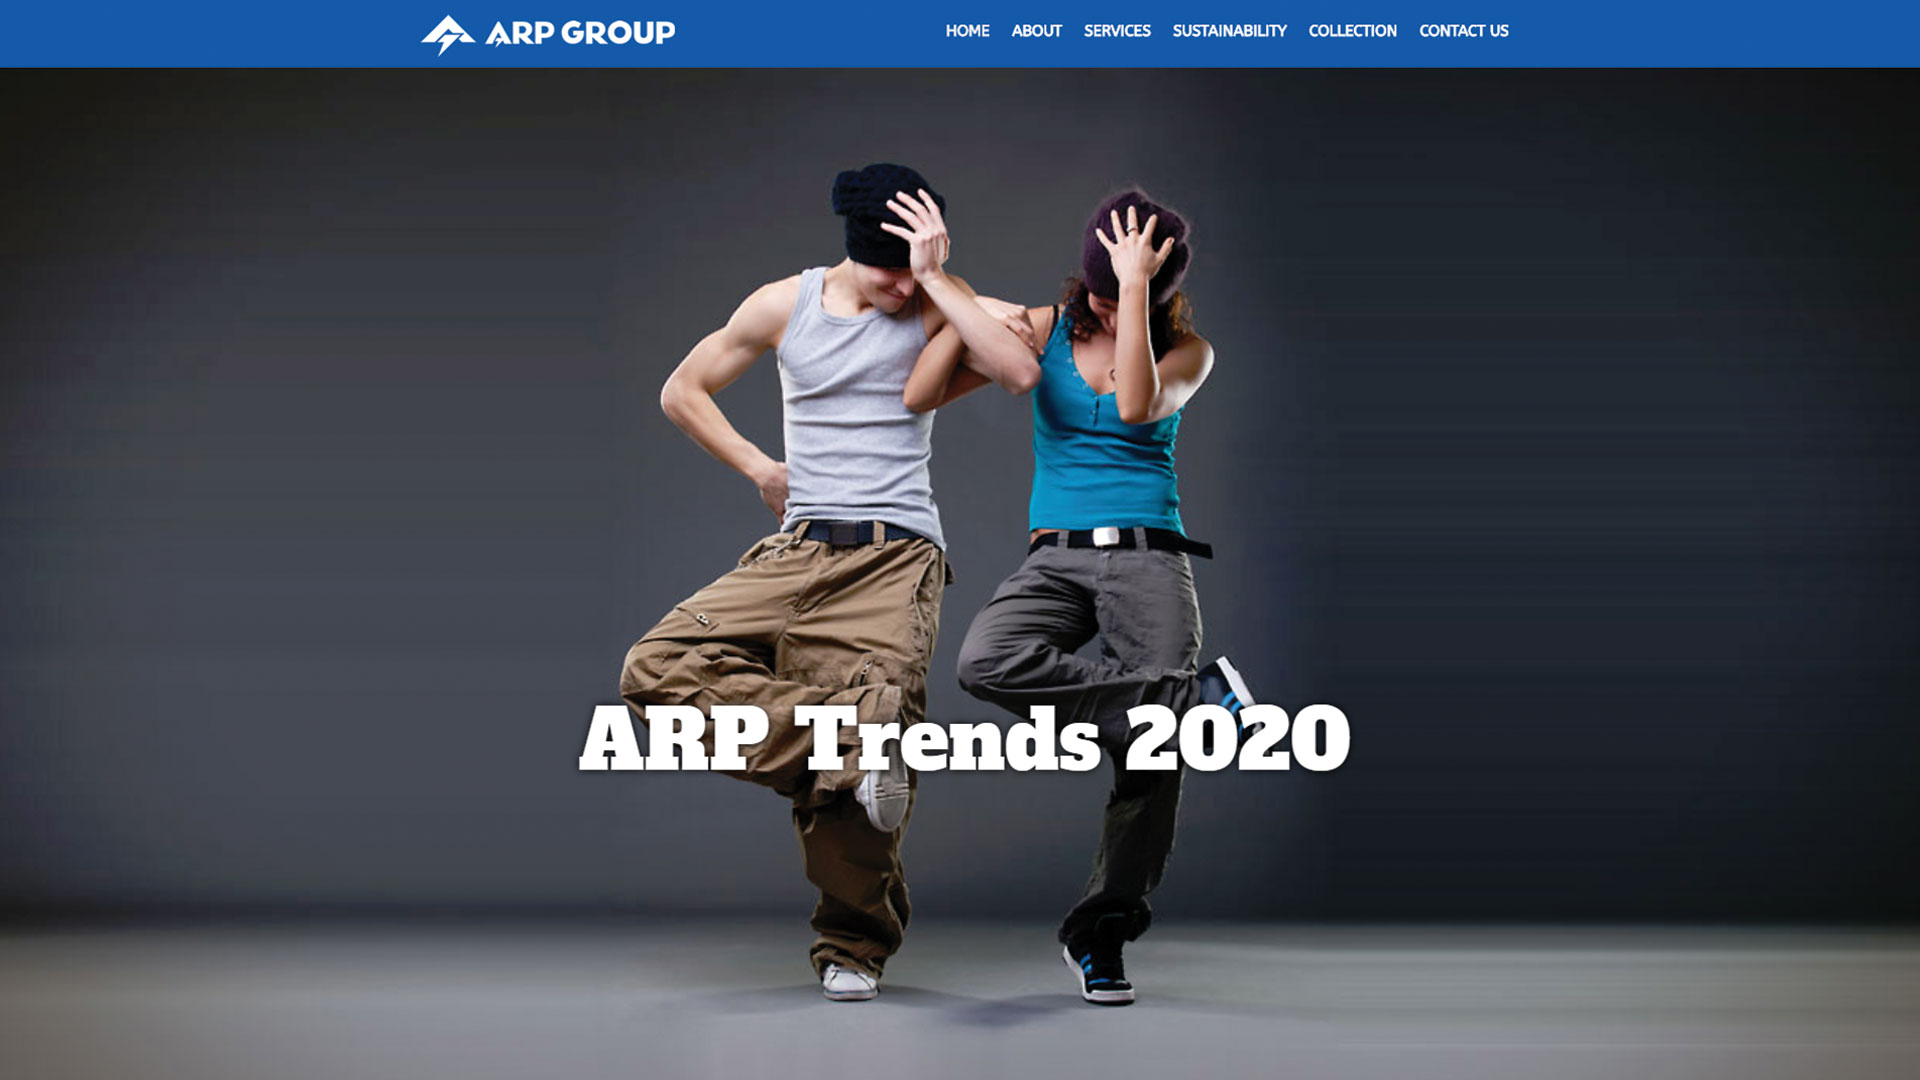 arp-group-Vancouver-web-design-Vancouver-web-development-by-mapleweb-canada-dancing-male-female-dressing-show-page-image